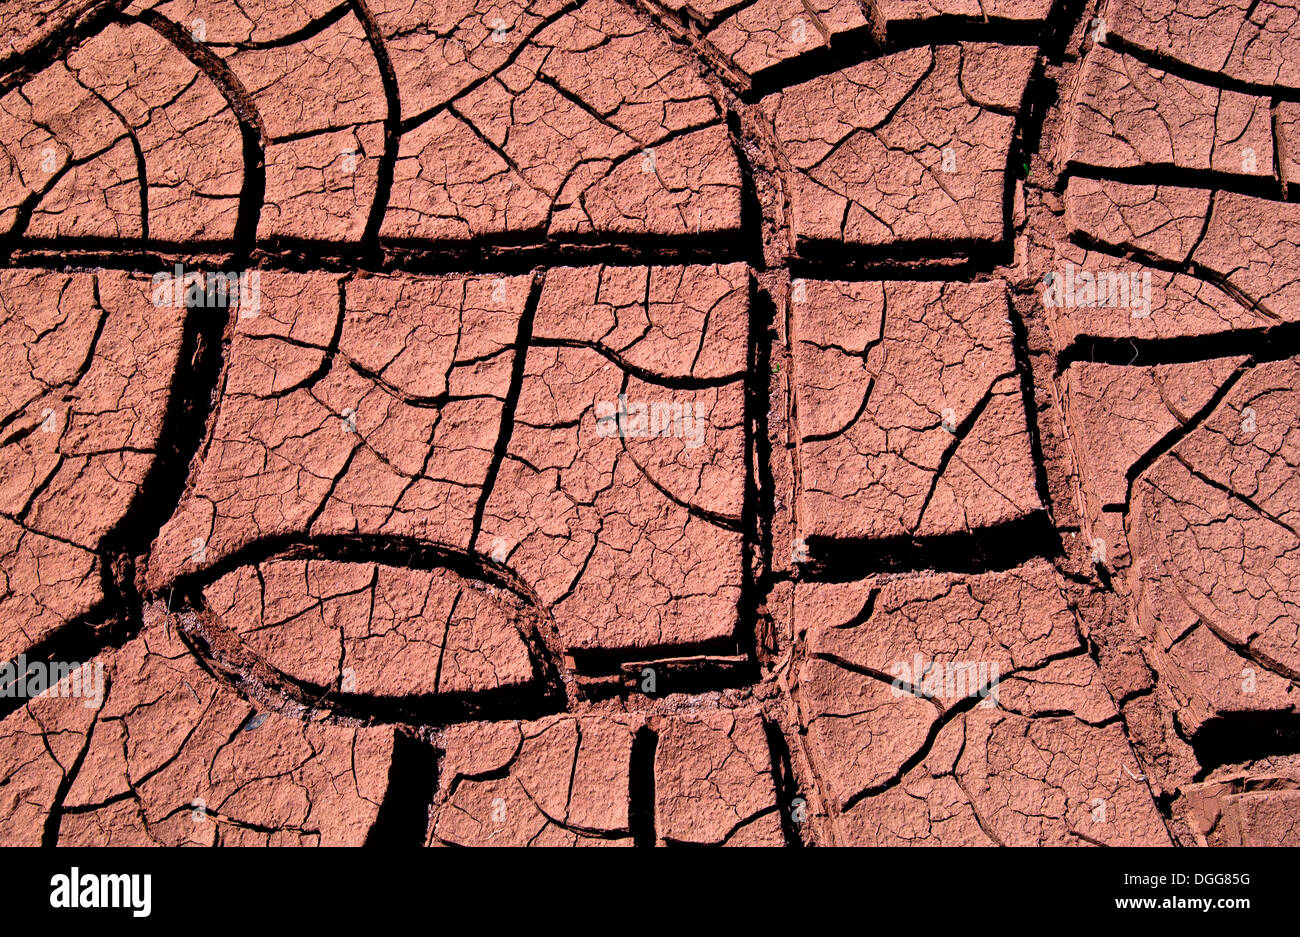 Baked Earth Cracks, Texas - Stock Image